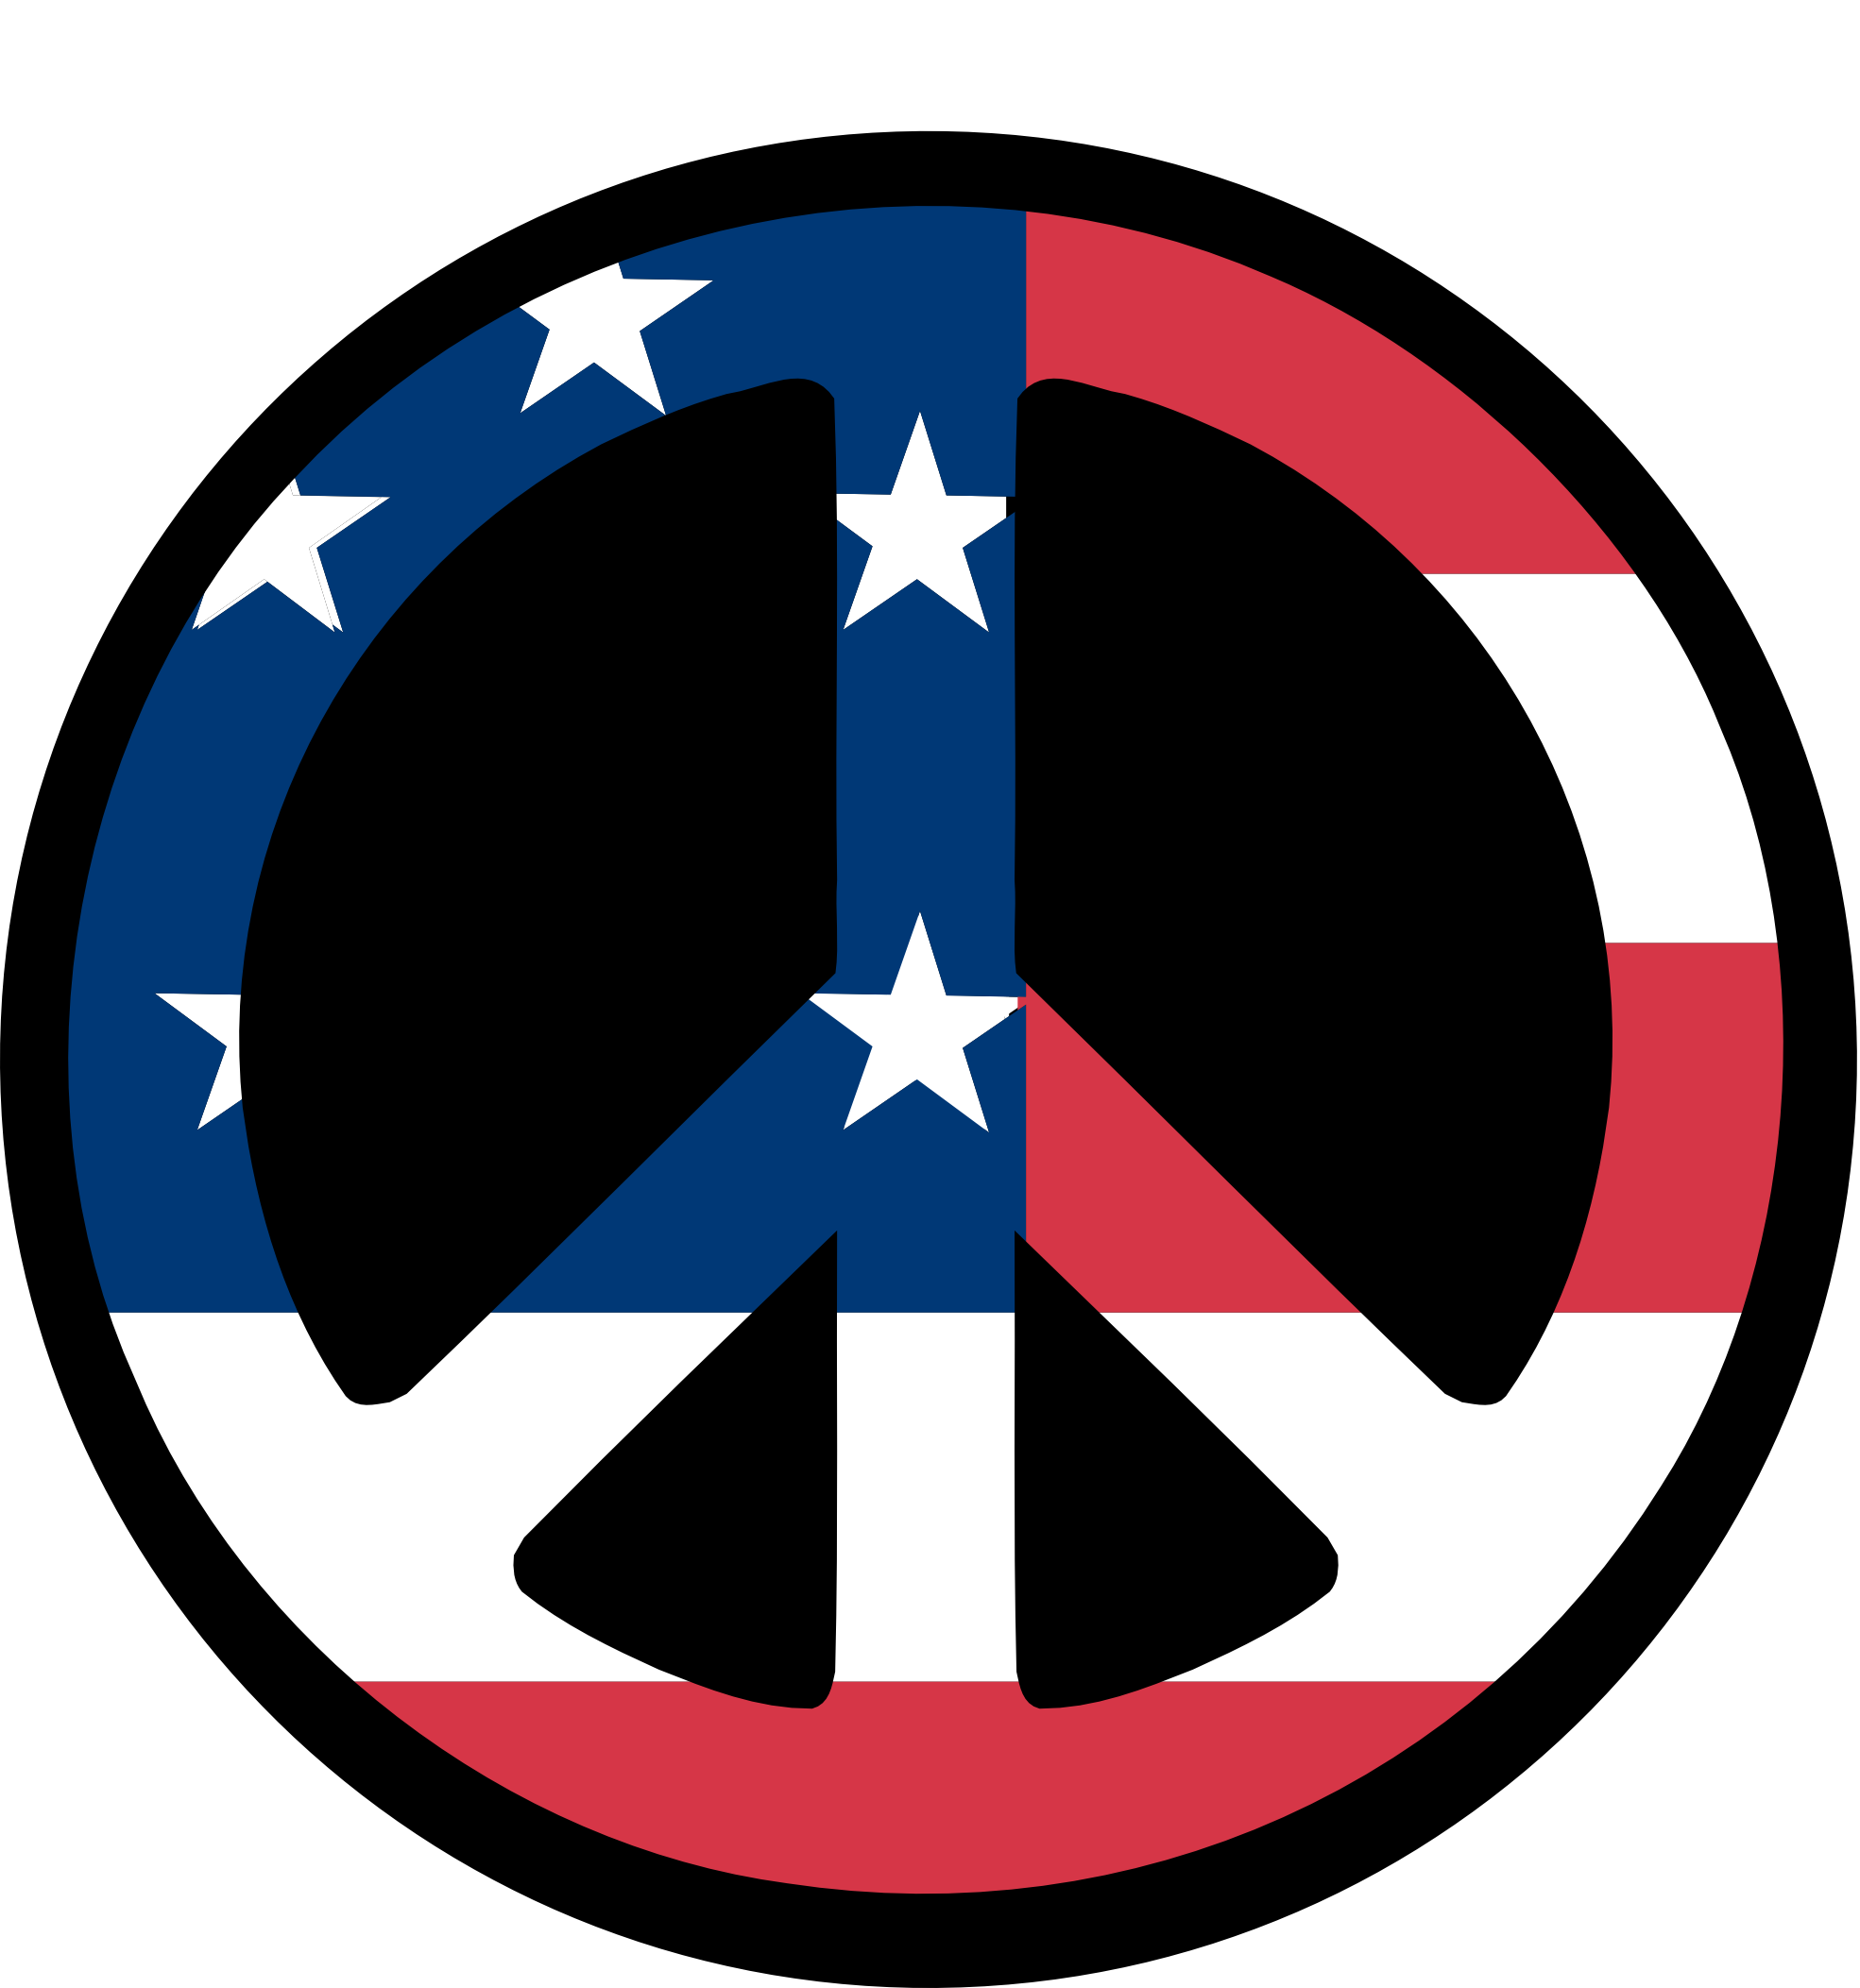 Peace clipart inner peace. Symbol photos gallery meaning